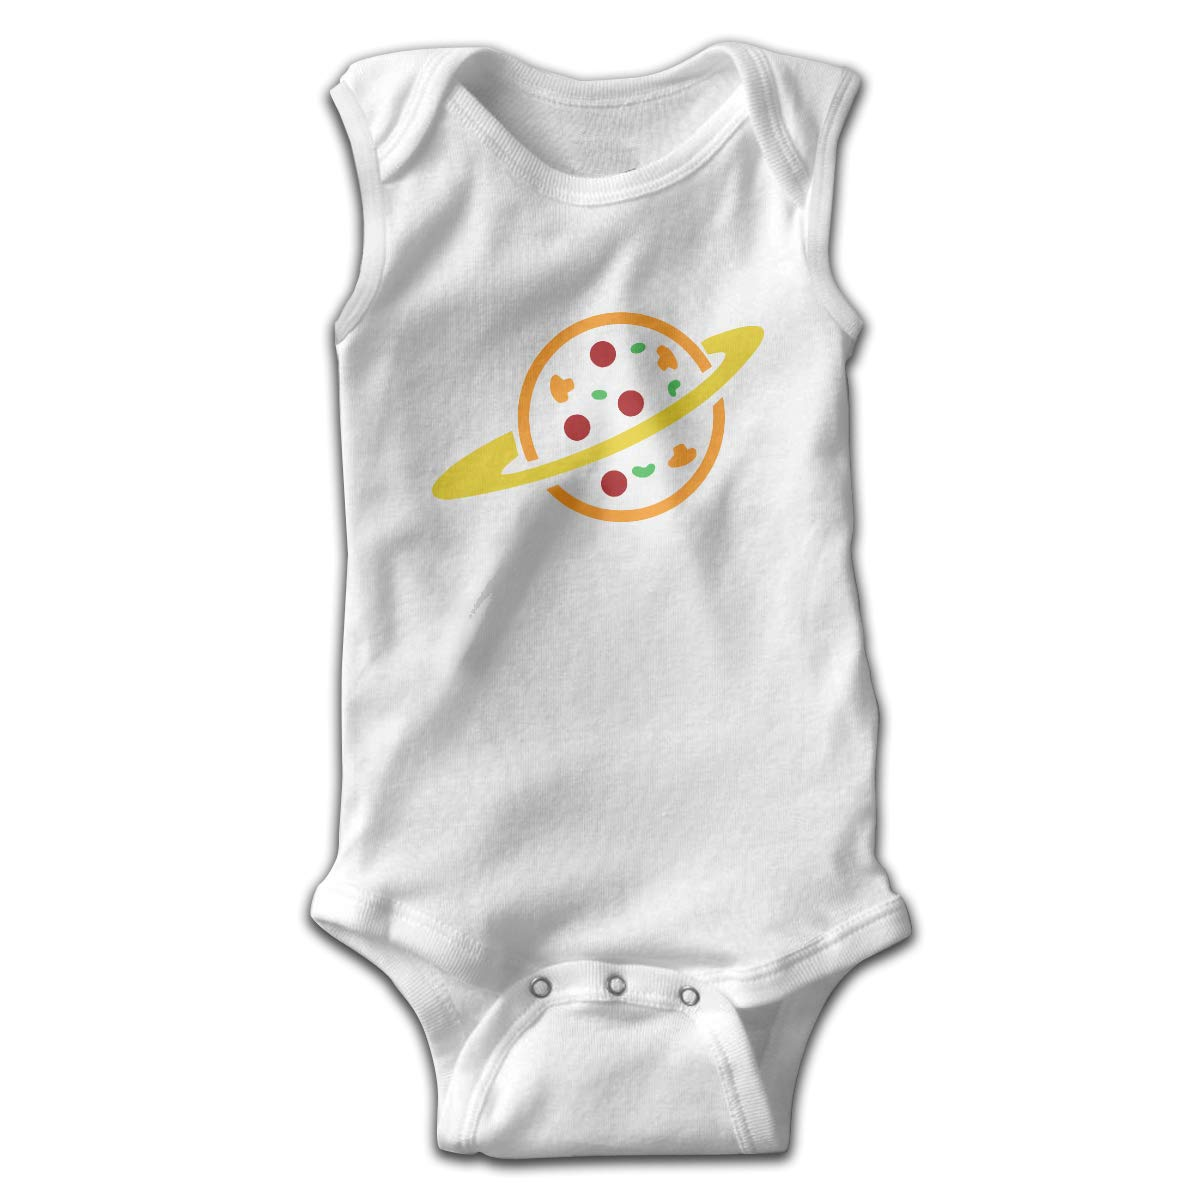 FAFU/&SKY Pizza Planet Newborn Baby Clothes Onesie Sleeveless Summer Funny Gift for Baby